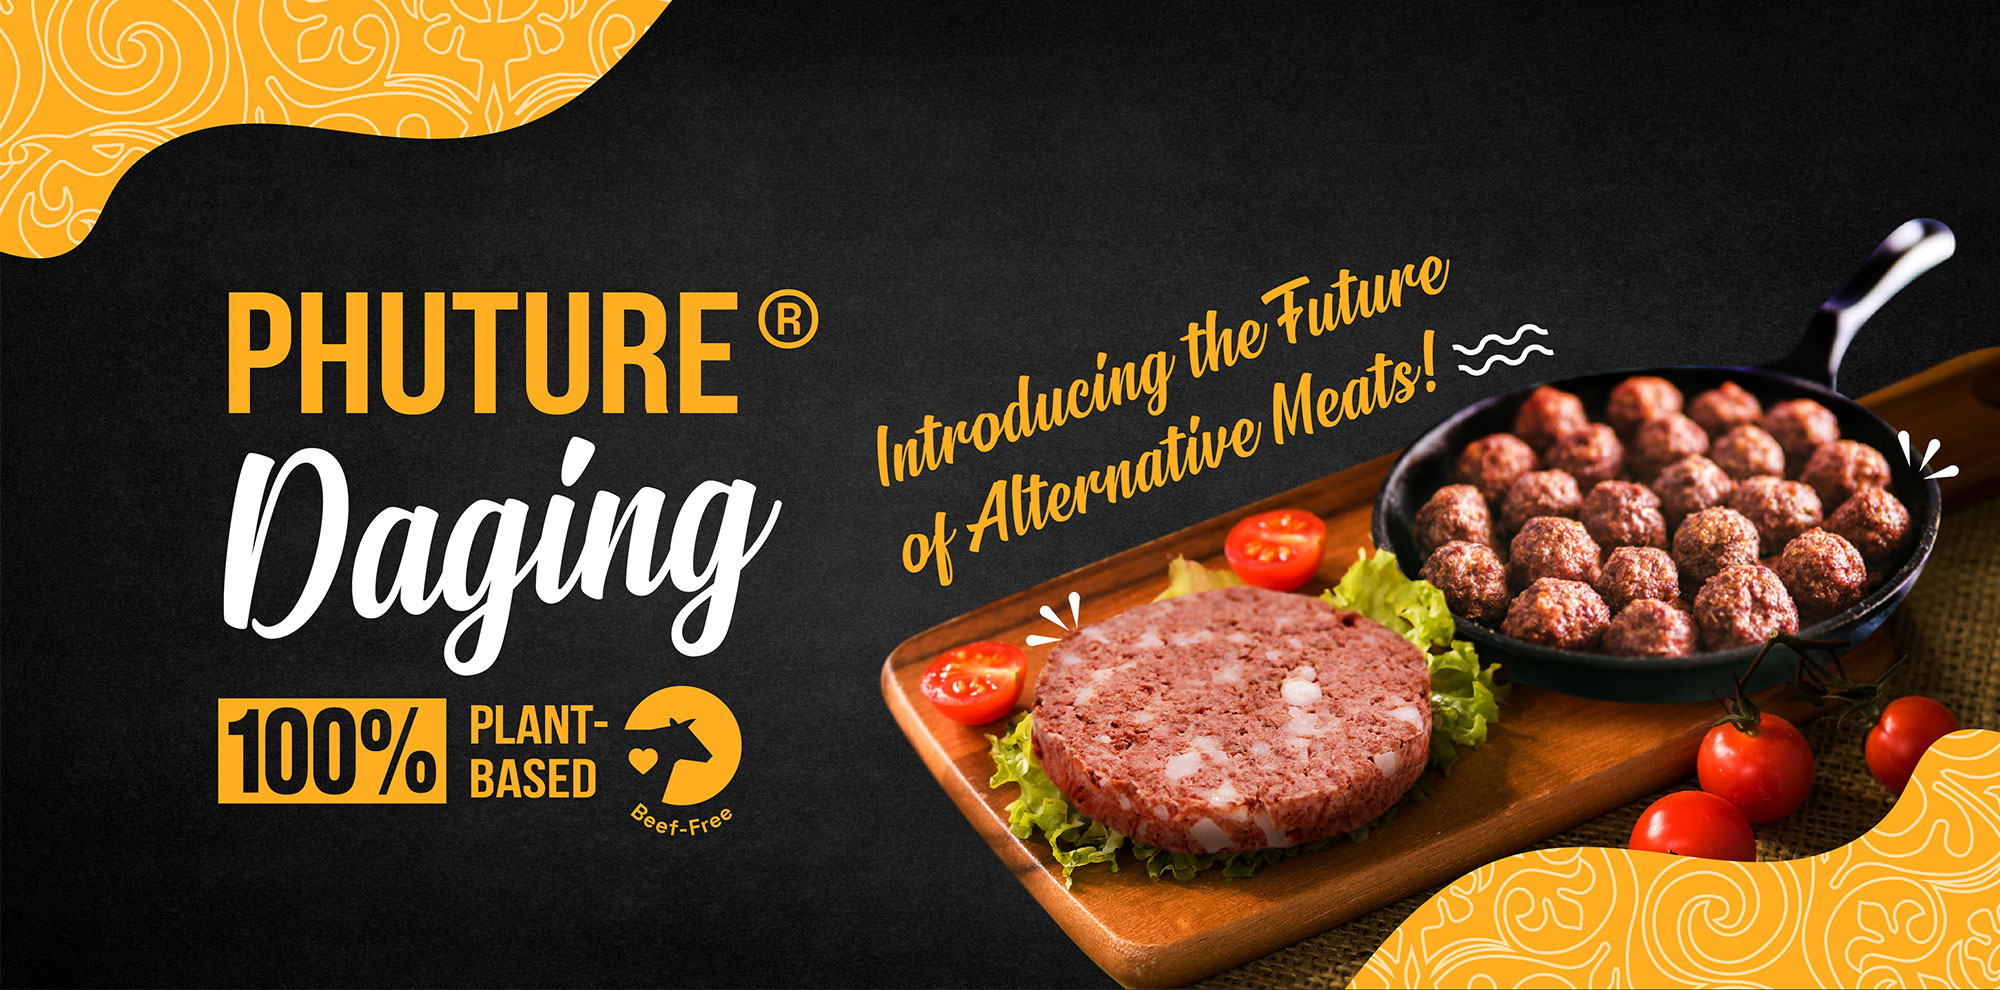 How To Having a Healthy and Balanced Plant-Based Diet With Phuture Daging